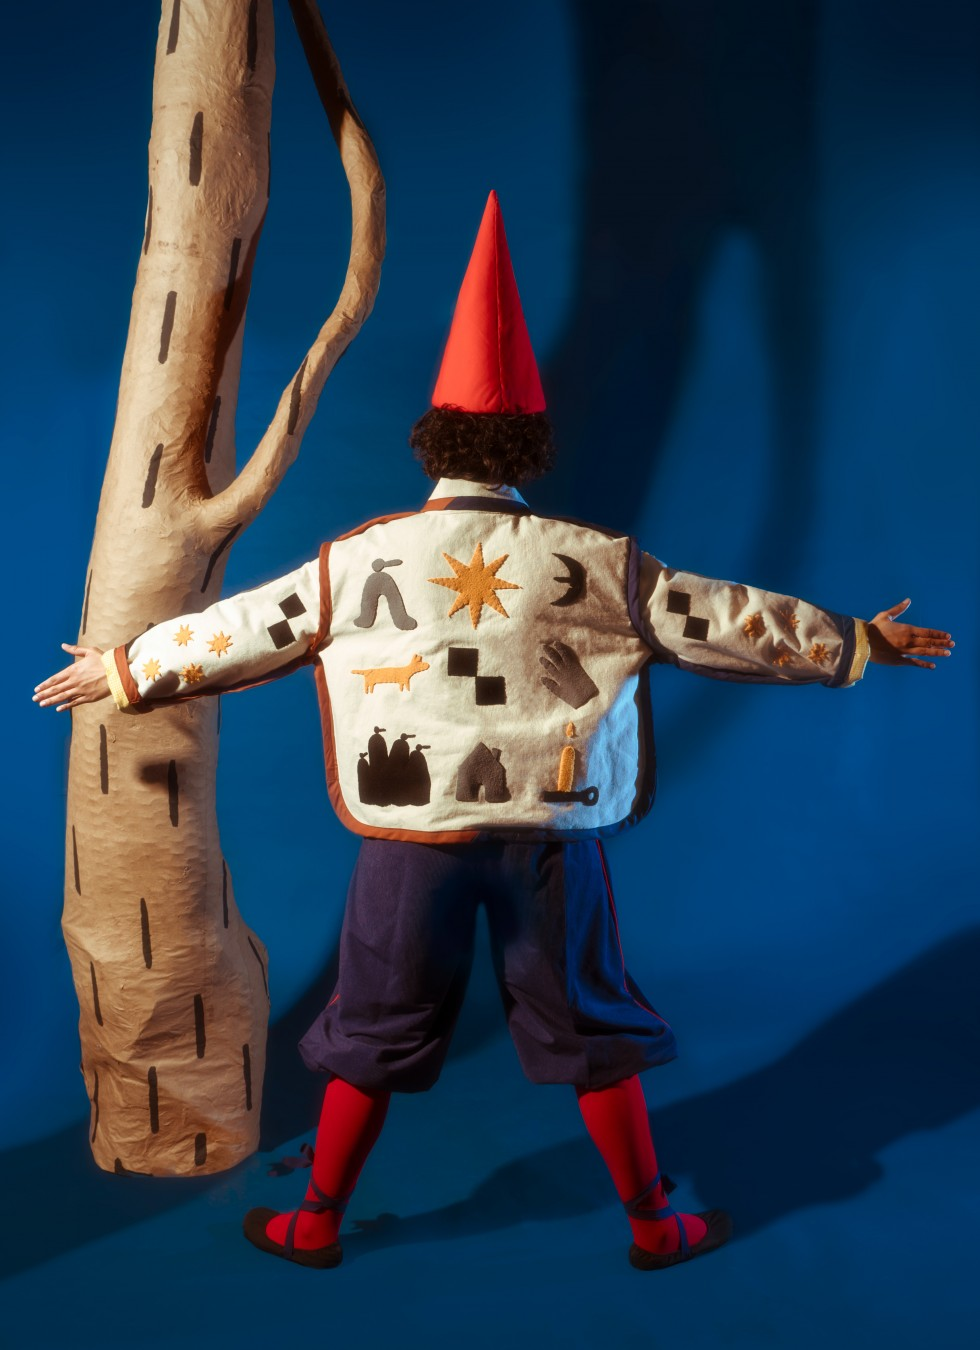 In all the images the piece sits on a blue background with two paper mache trees with a painted black dash pattern. In image one, only one tree is visible on the left side behind the model. The model is facing away from the camera standing with their arms